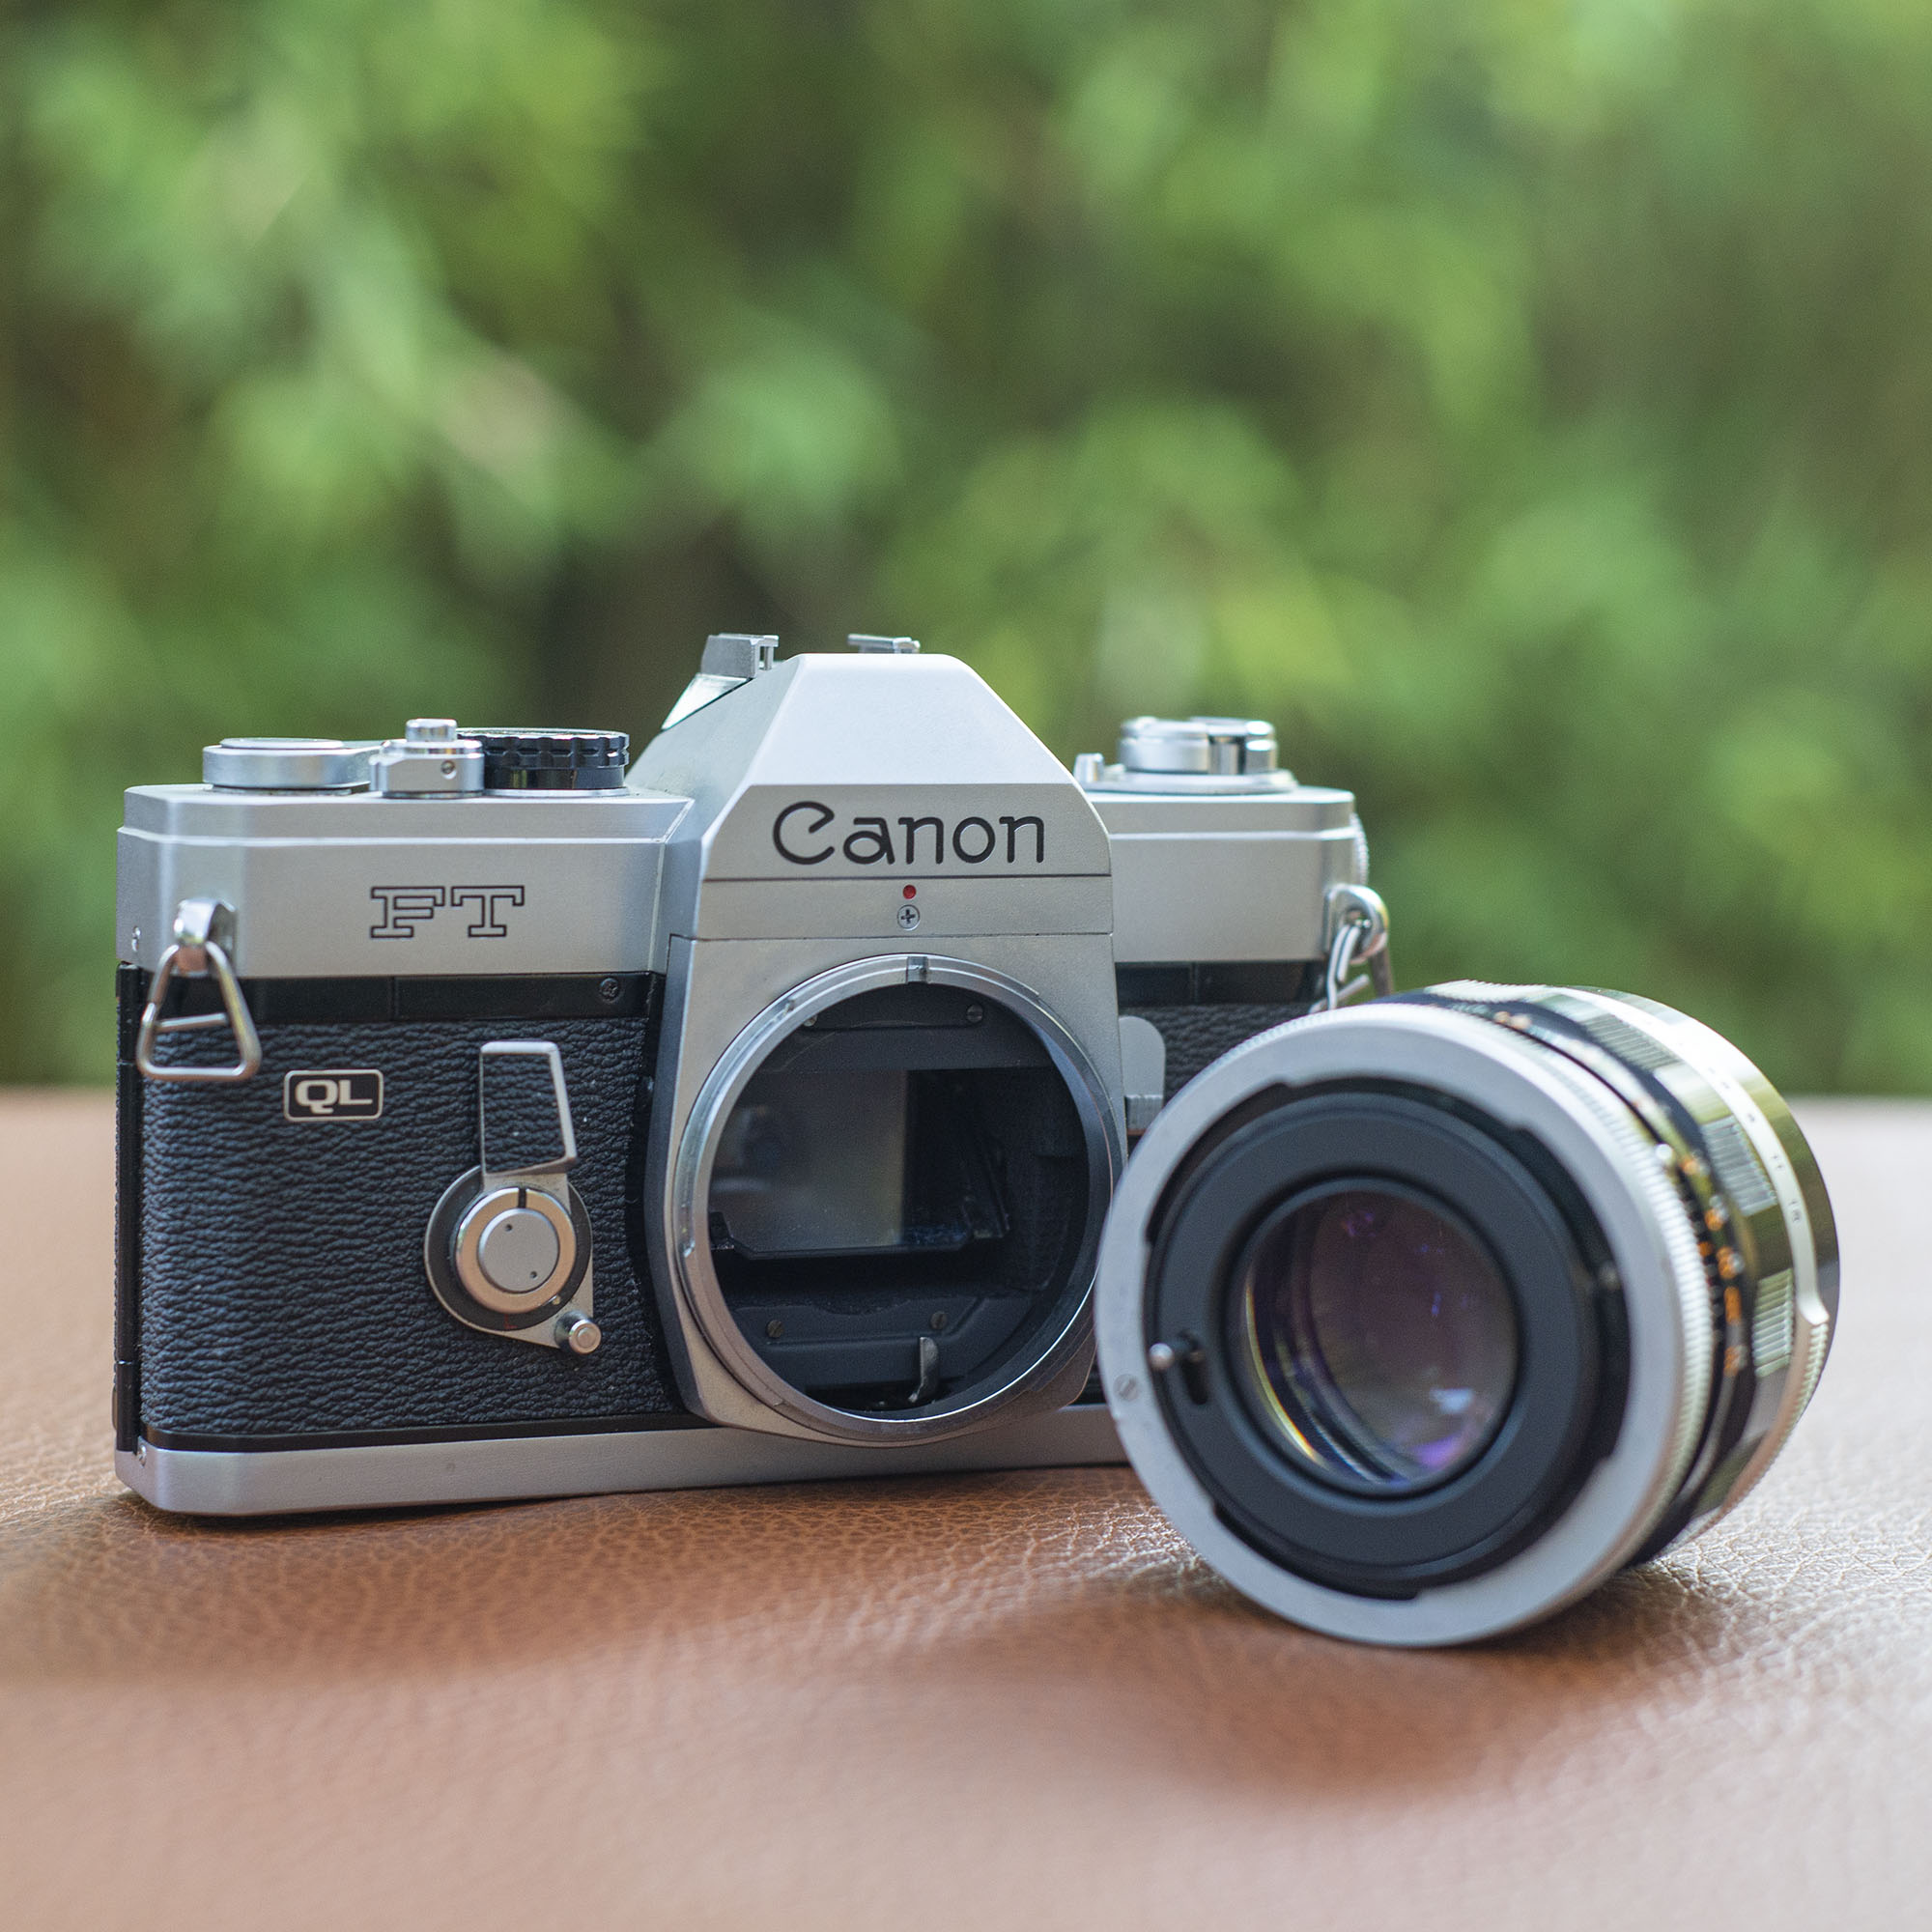 Canon FT with lens off